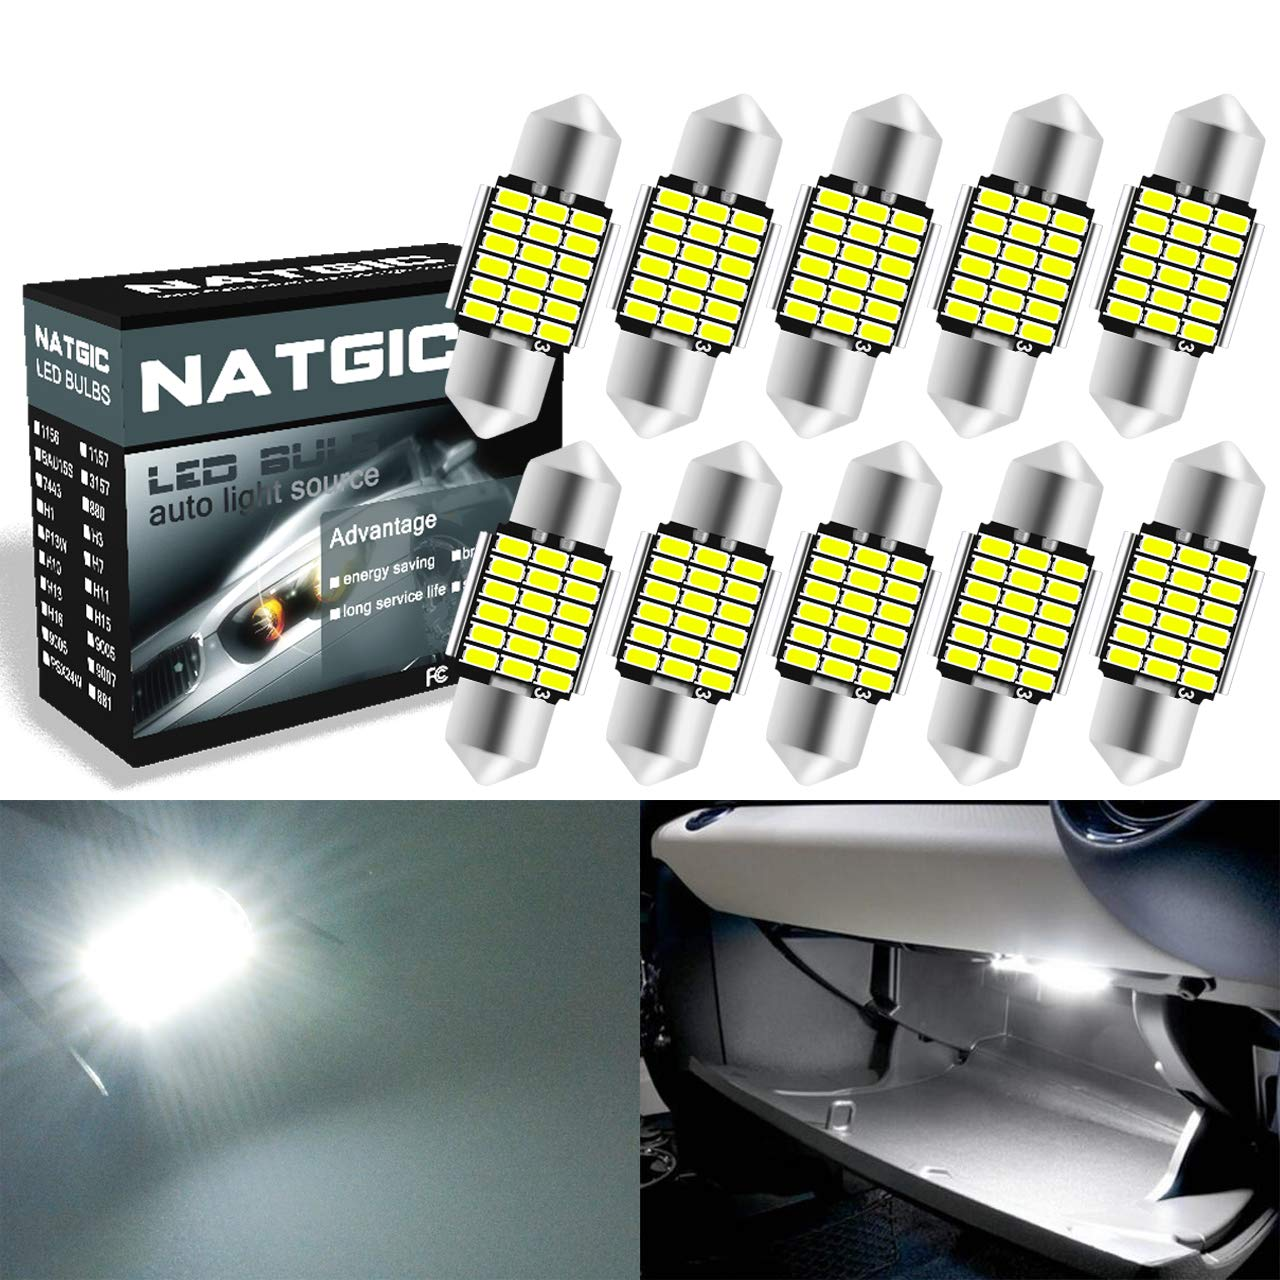 AJUMKER C5W Extremely Bright CanBus Error Free 1.53 39mm DE3423 DE3425 3423 3425 6411 6418 LED Festoon Car Interior Dome Map License Plate Lights 6500K Xenon White 12V Pack of 4